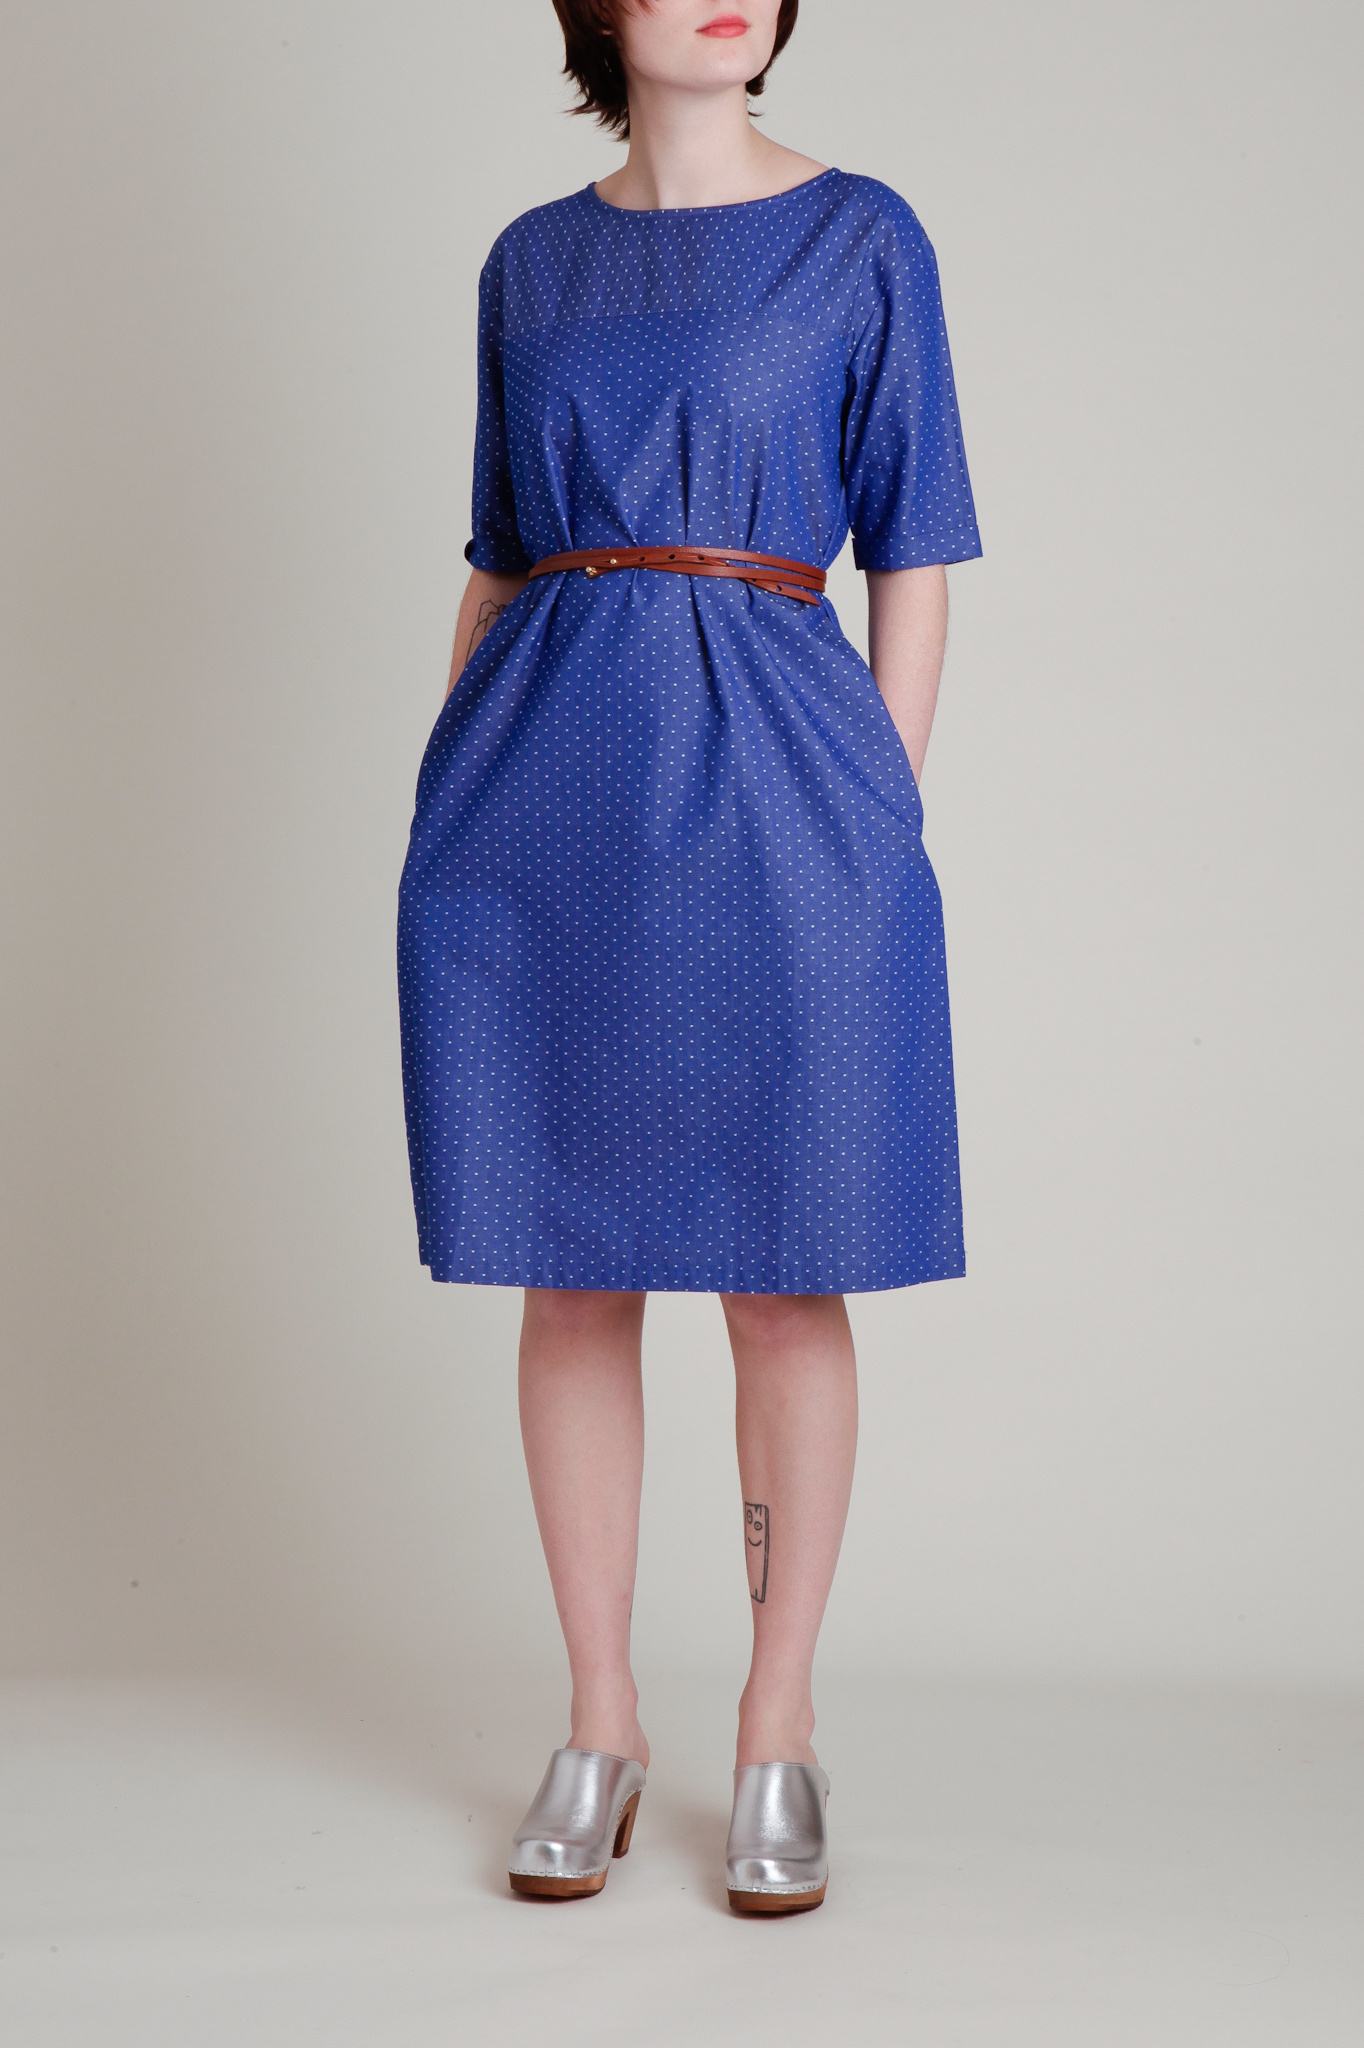 A. Cheng A-Line Shift Dress in Blue and White Cotton